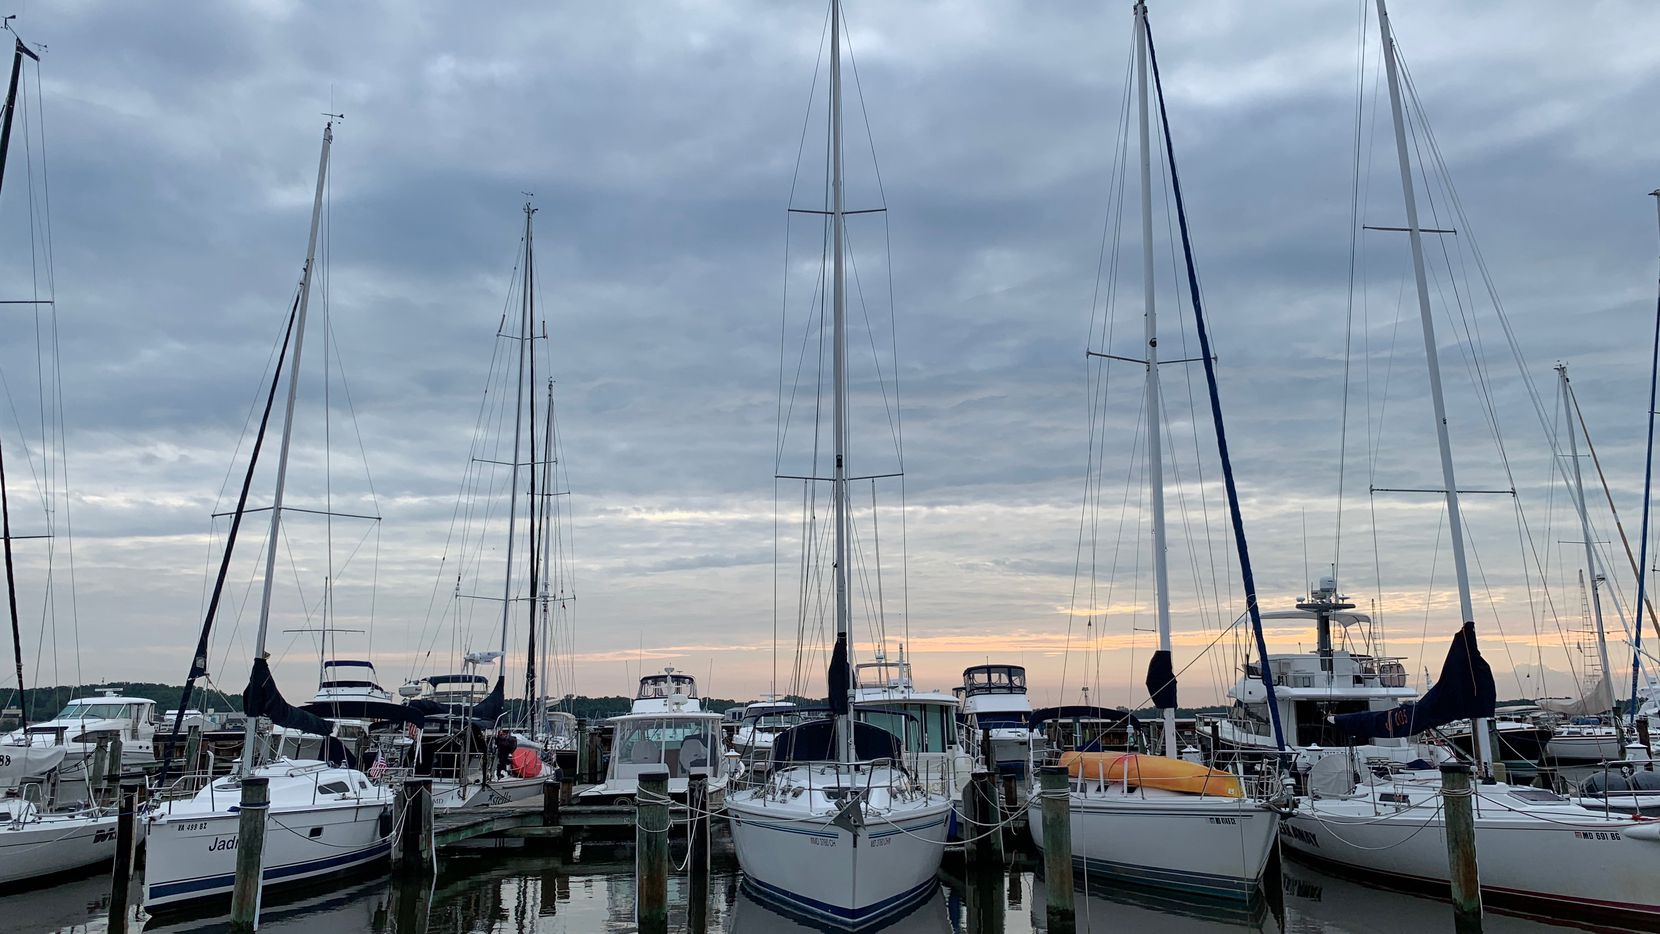 Wind Song (center) is shown at rest in the Eastport district of Annapolis, Md.